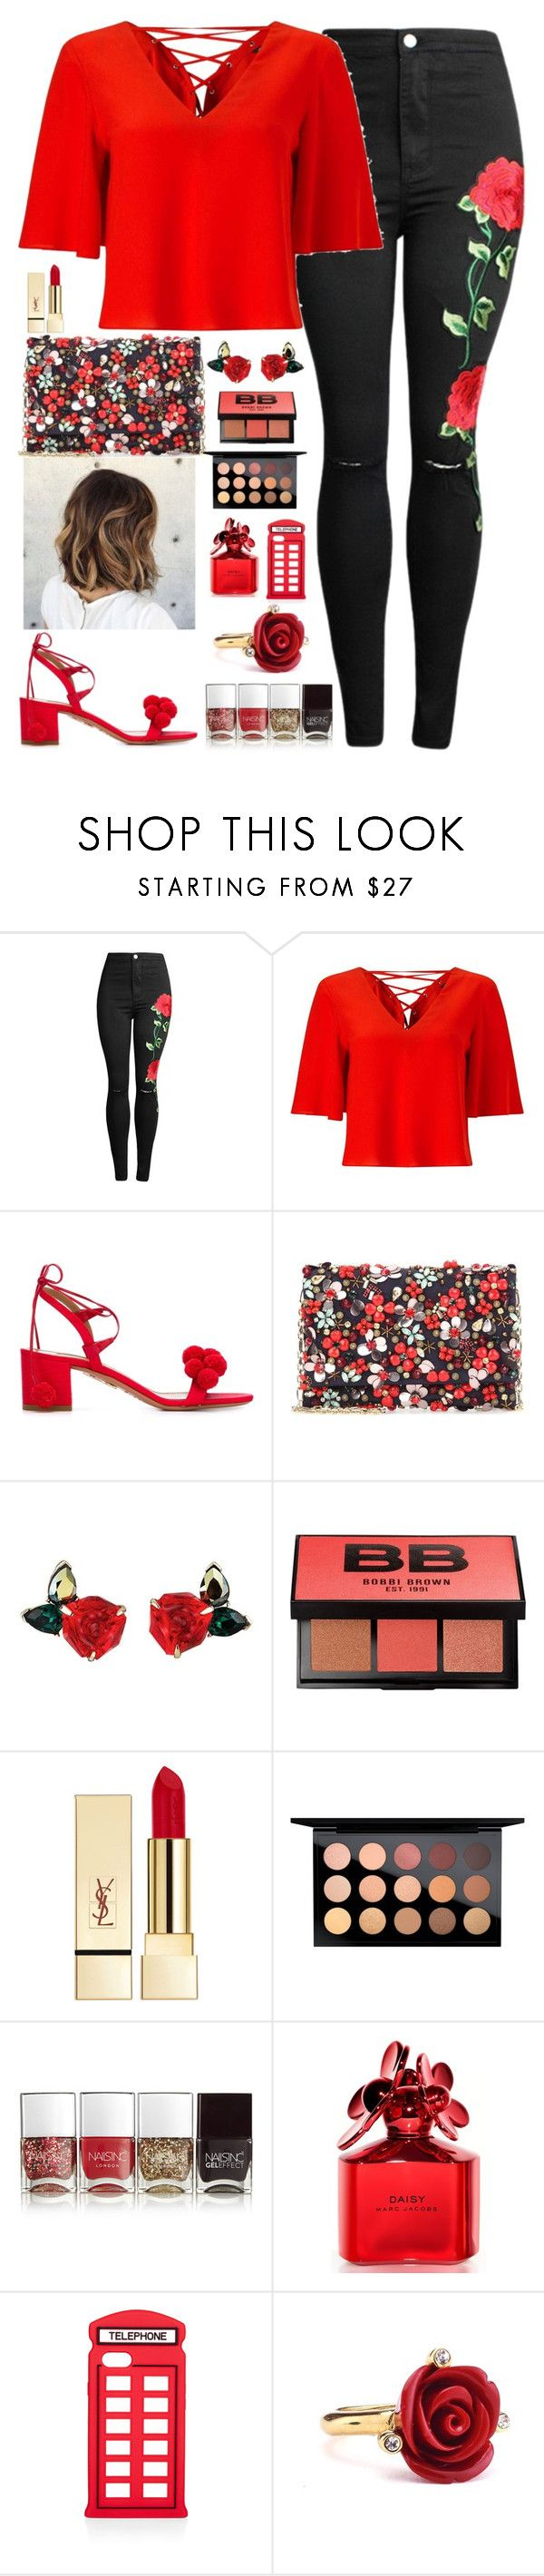 """Red Bloom"" by fabirm ❤ liked on Polyvore featuring Miss Selfridge, Aquazzura, Oscar de la Renta, Bobbi Brown Cosmetics, PUR, MAC Cosmetics, Nails Inc., Marc Jacobs and Lulu Guinness"